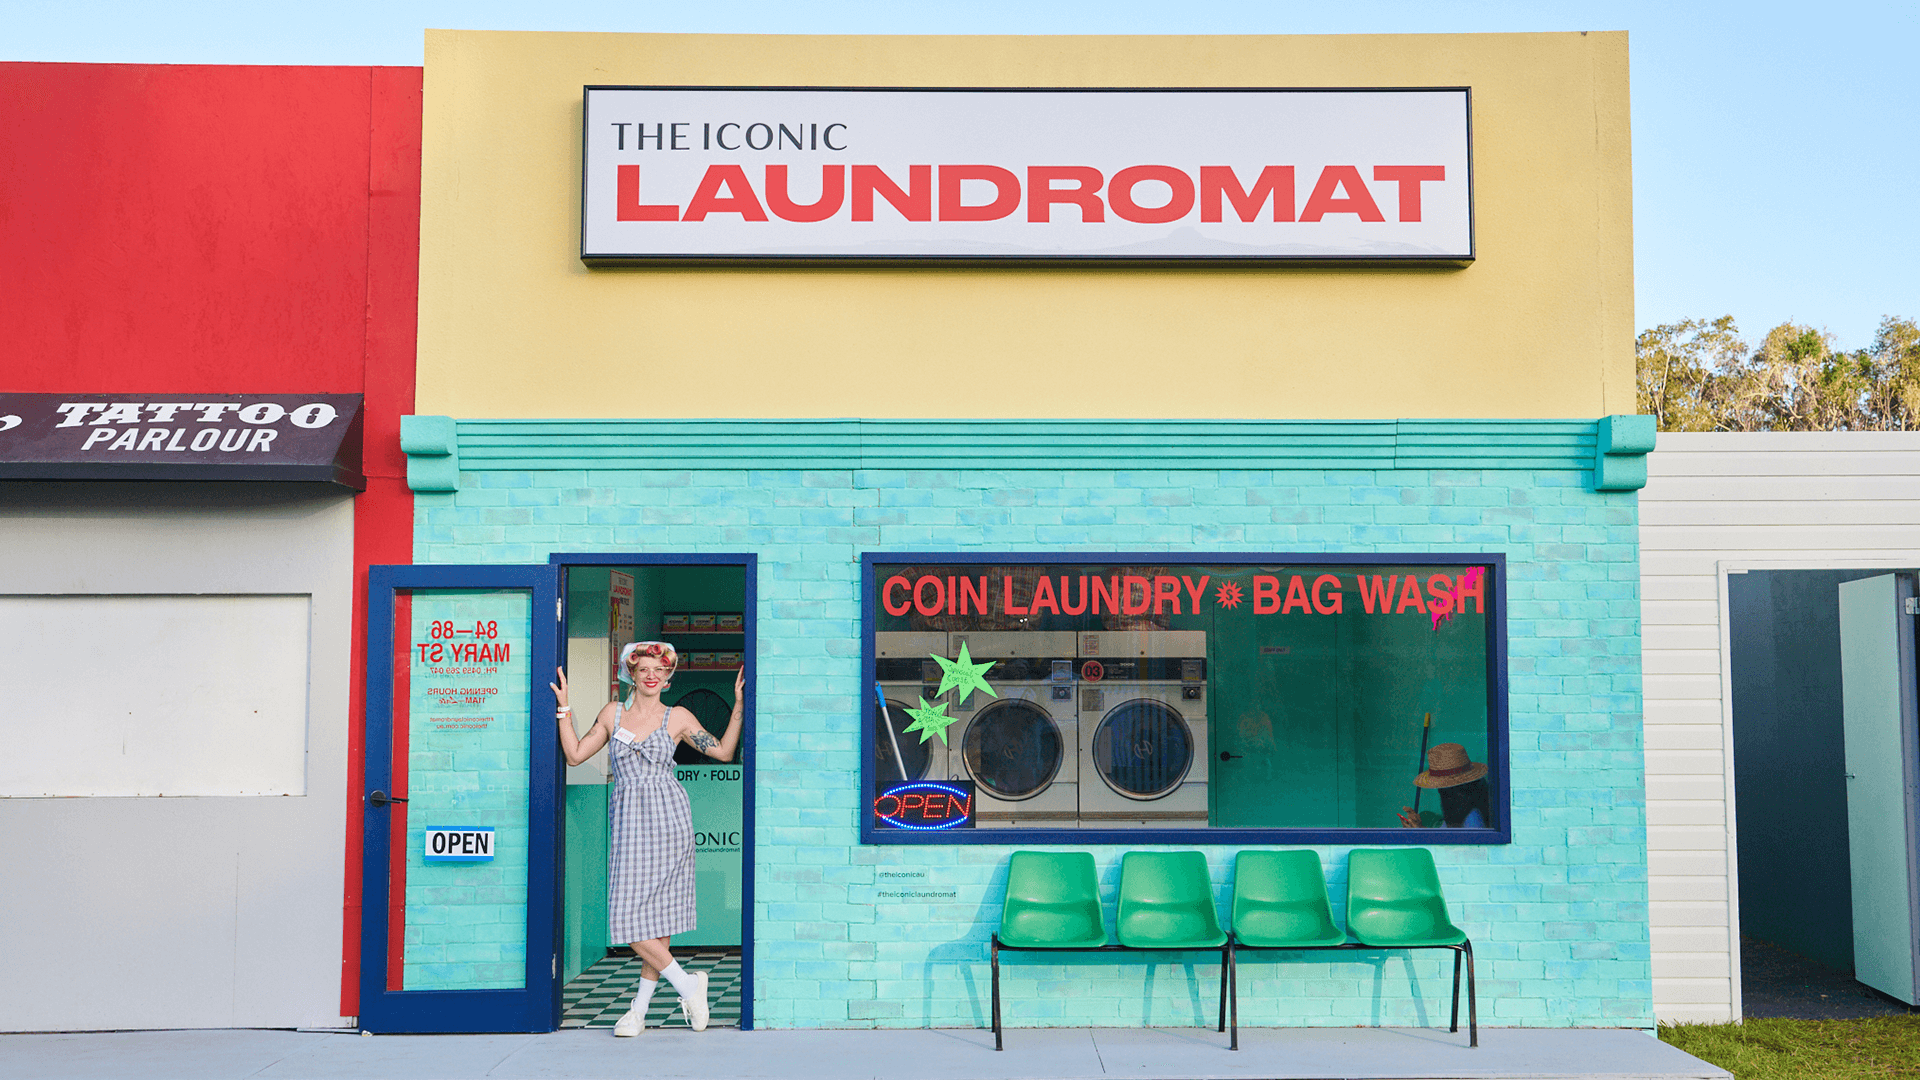 6. The Iconic laundromat 1